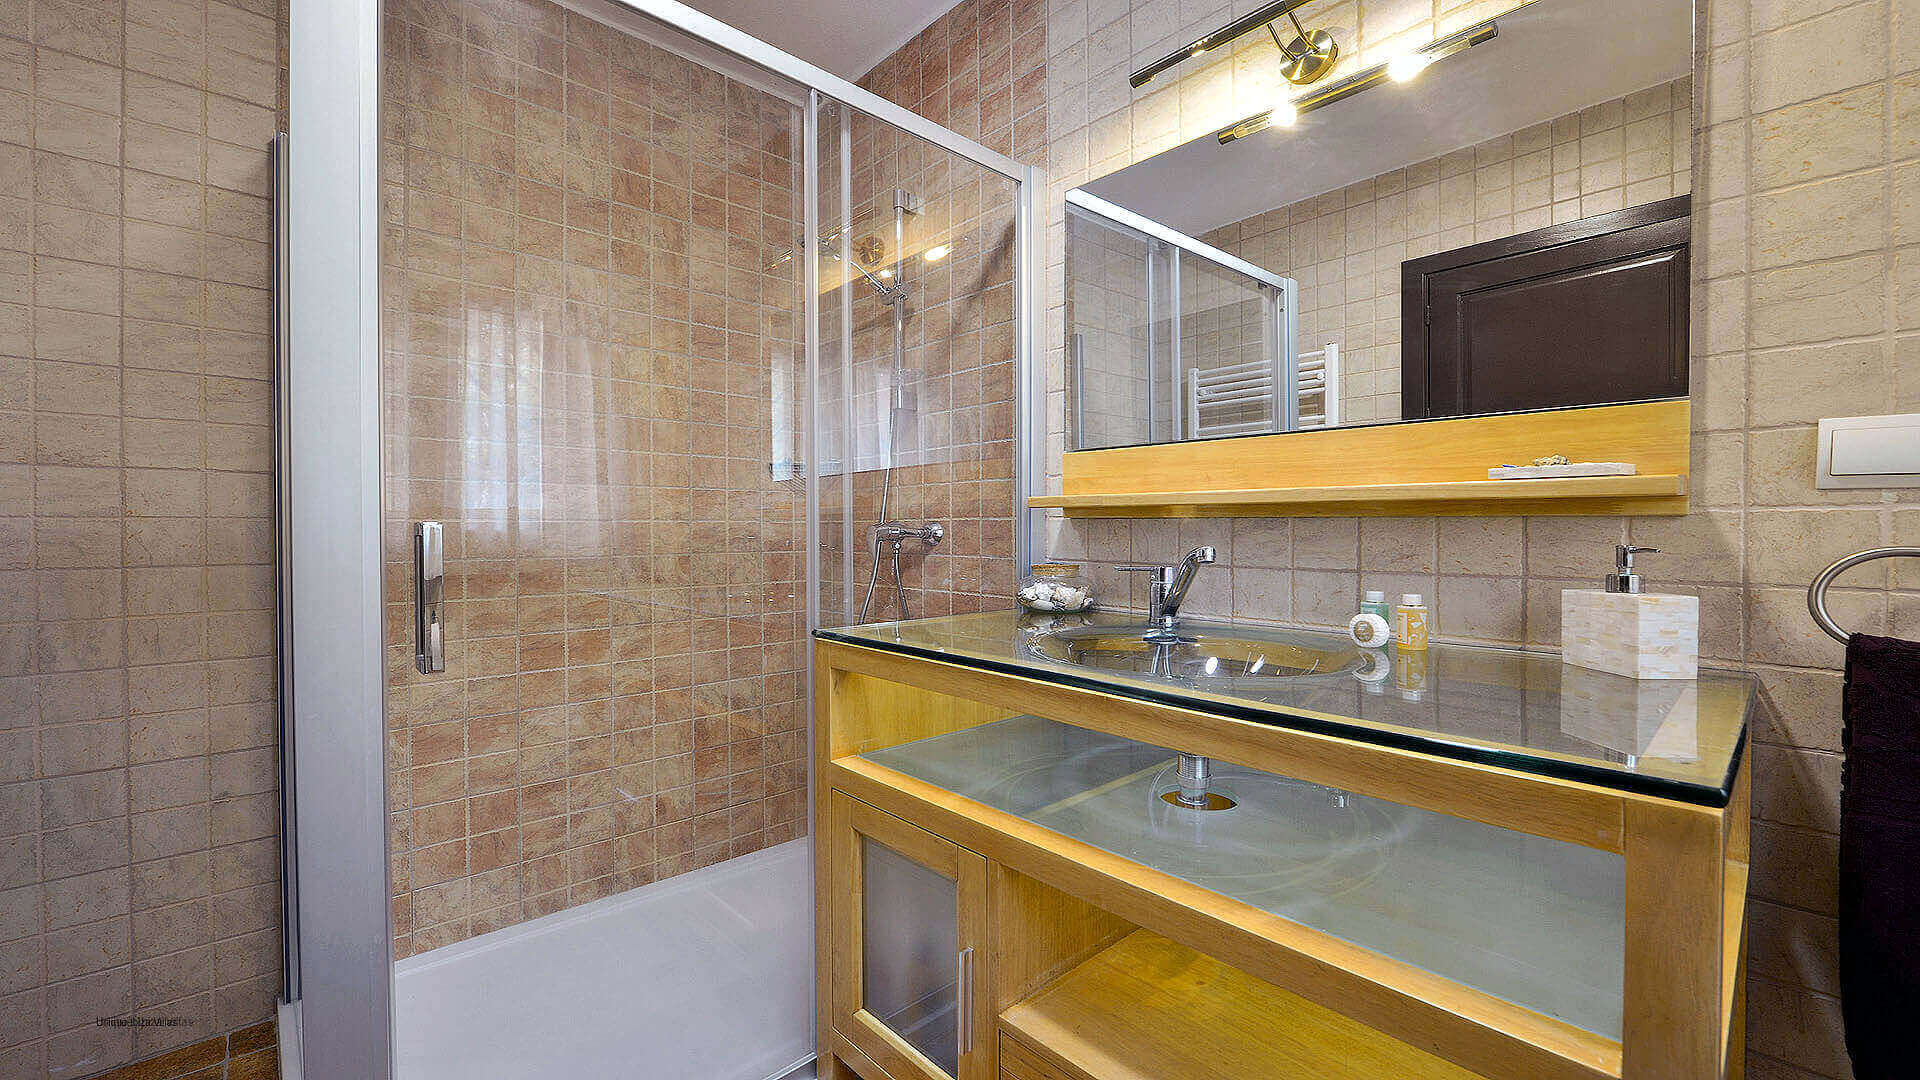 Cana Lucia Ibiza 44 Bathroom 3